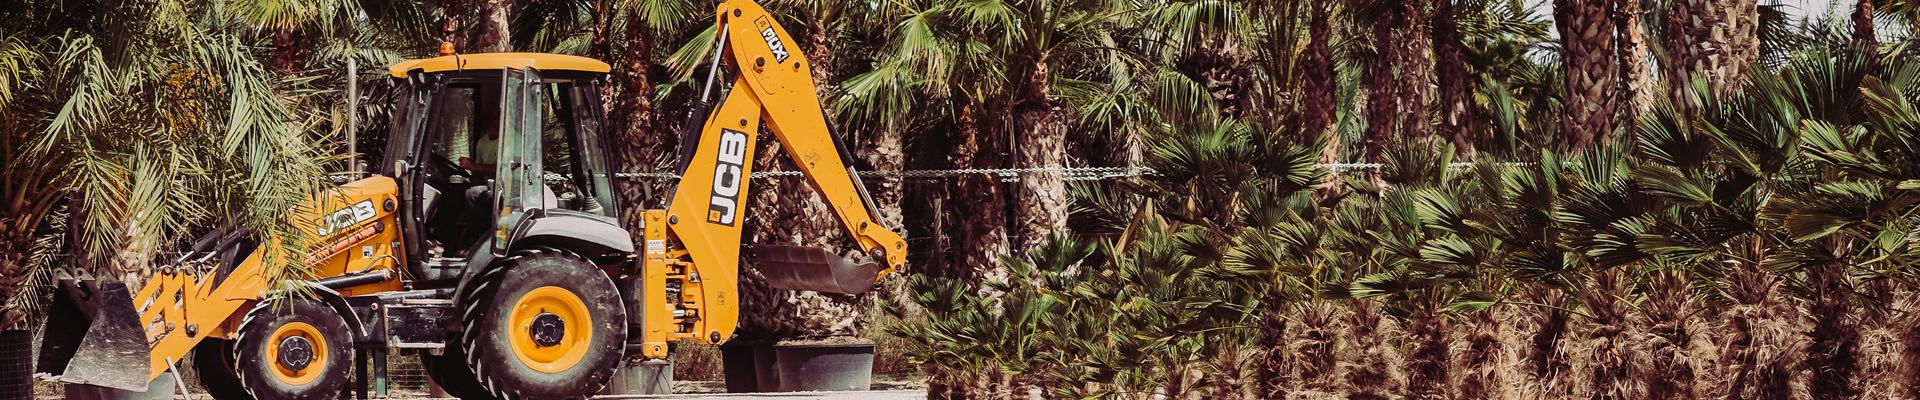 What is LOLER - Lifting Operations and Lifting Equipment Regulations?